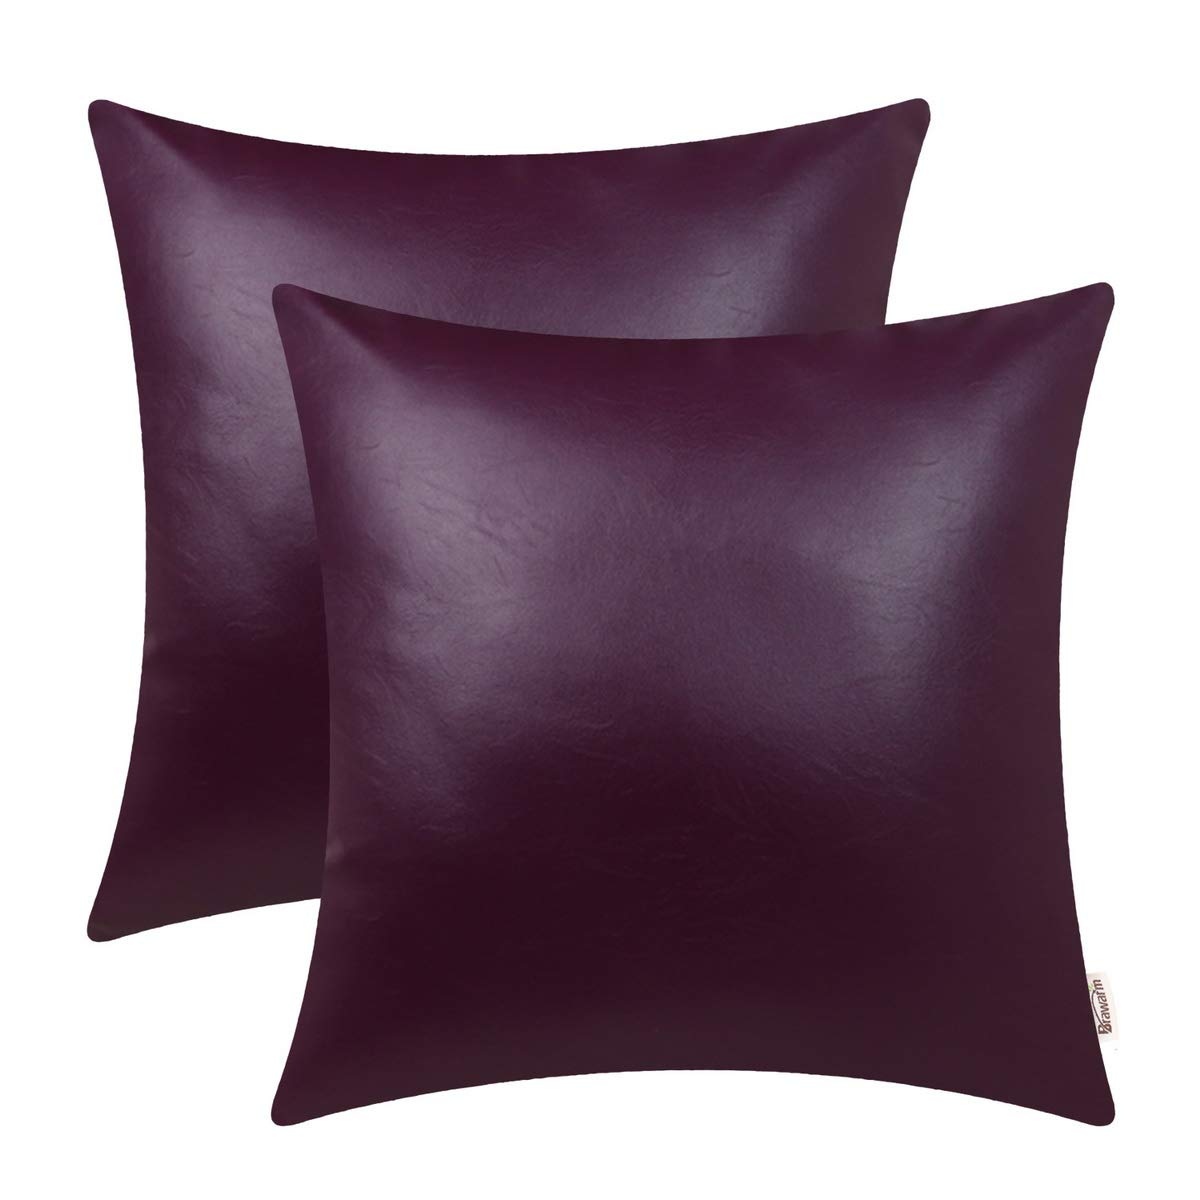 BRAWARM Pack of 2 Cozy Throw Pillow Covers Cases for Couch Sofa Home Decoration Solid Dyed Soft Faux Leather Both Sides 22 X 22 Inches Deep Purple